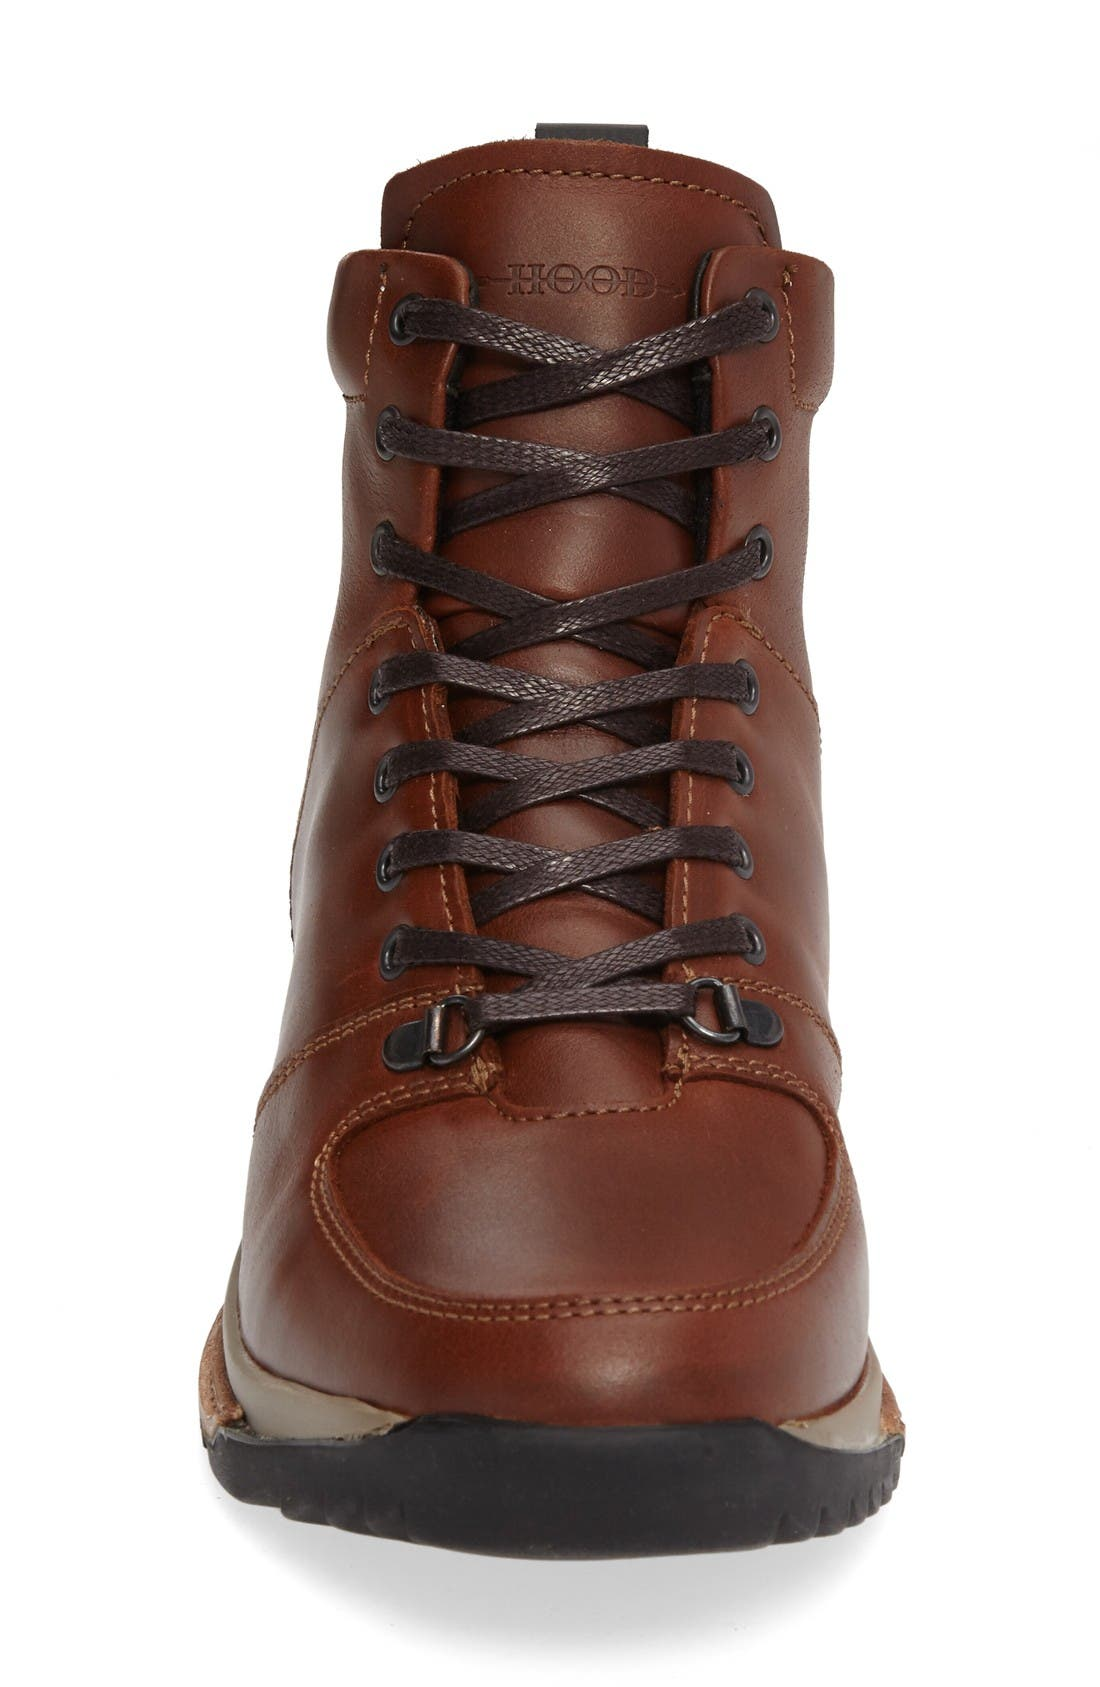 Concord Mid Top Wool Cuffed Waterproof Boot,                             Alternate thumbnail 3, color,                             Seahorse Leather